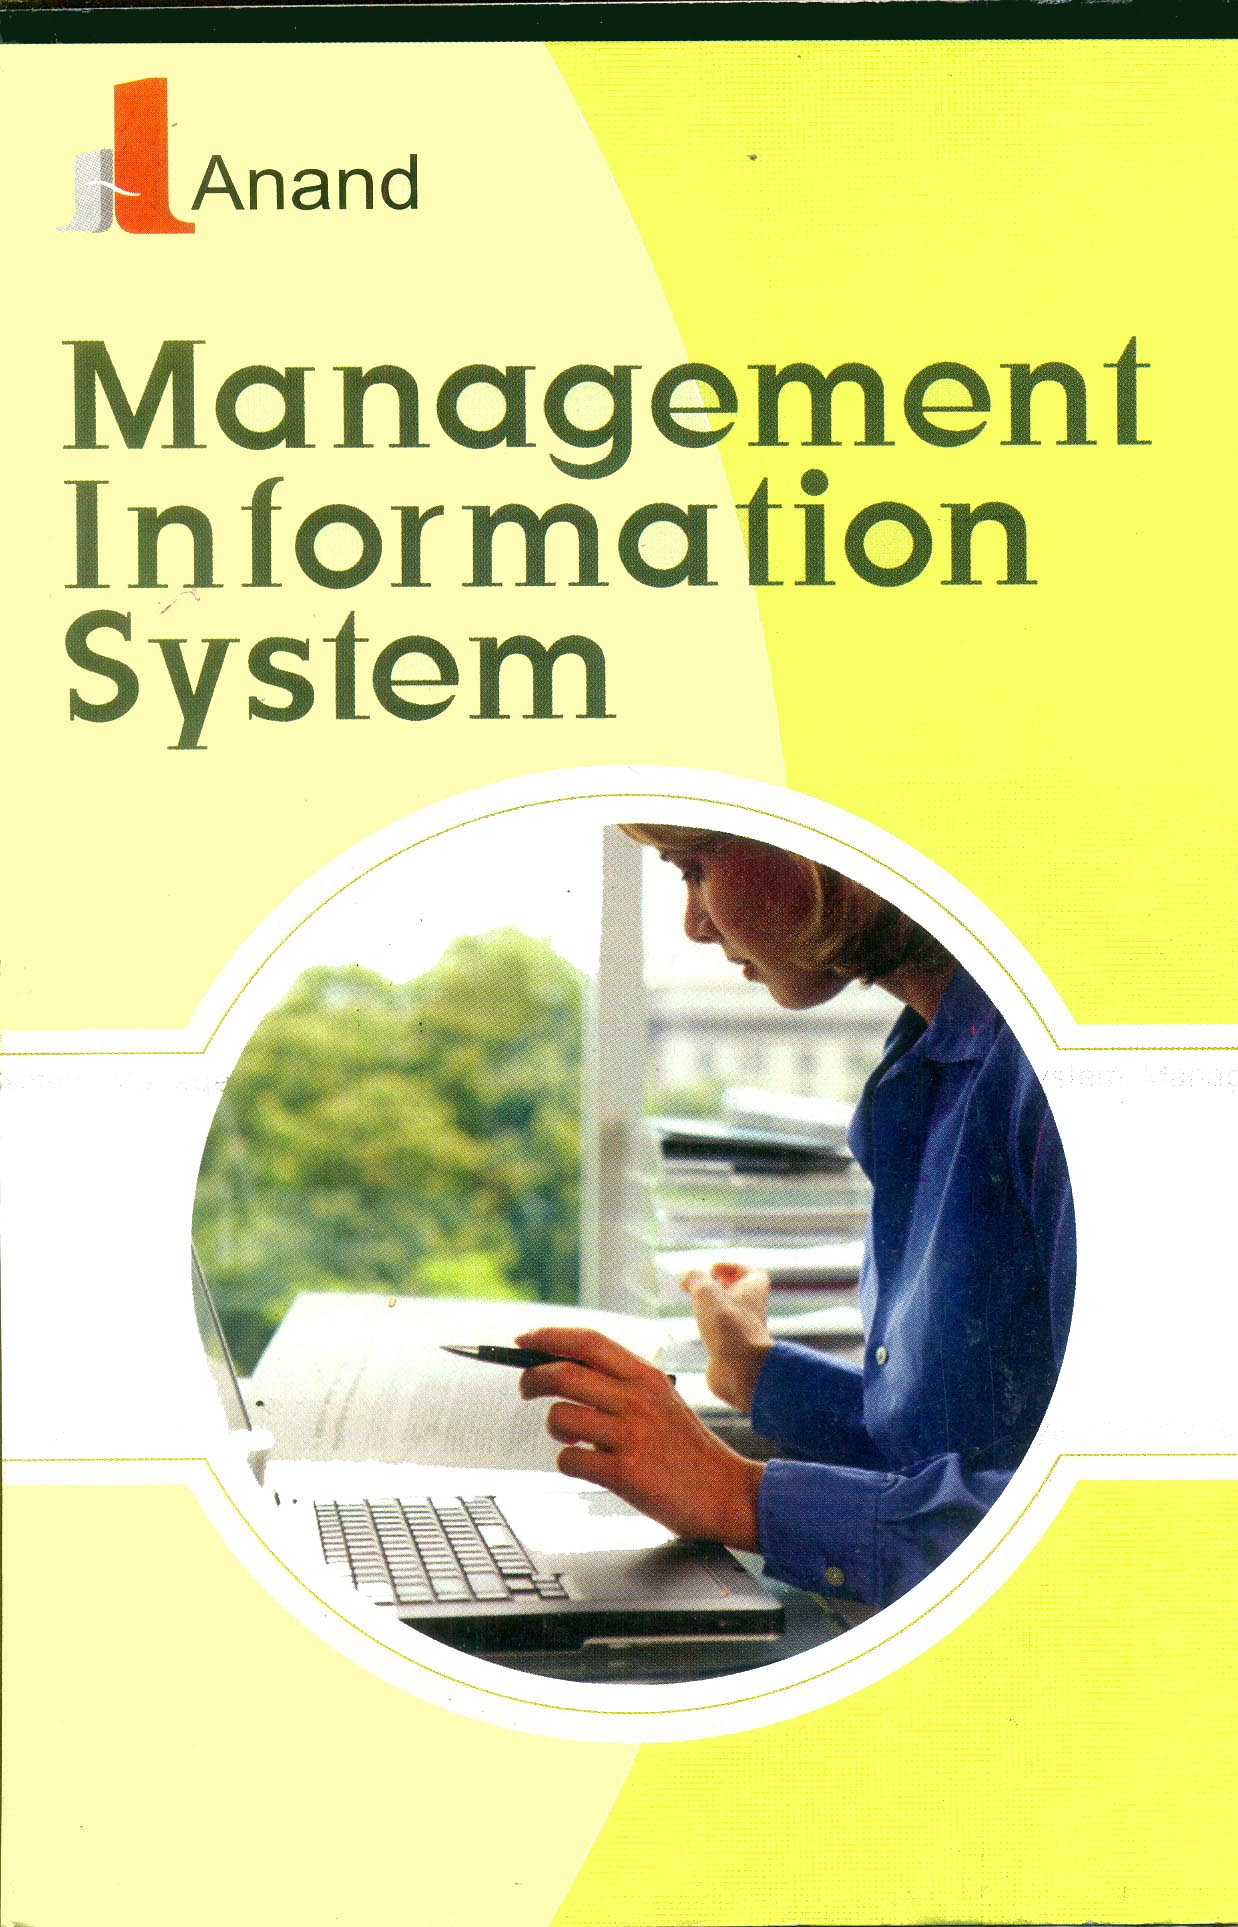 503 MANAGEMENT INFORMATION SYSTEM